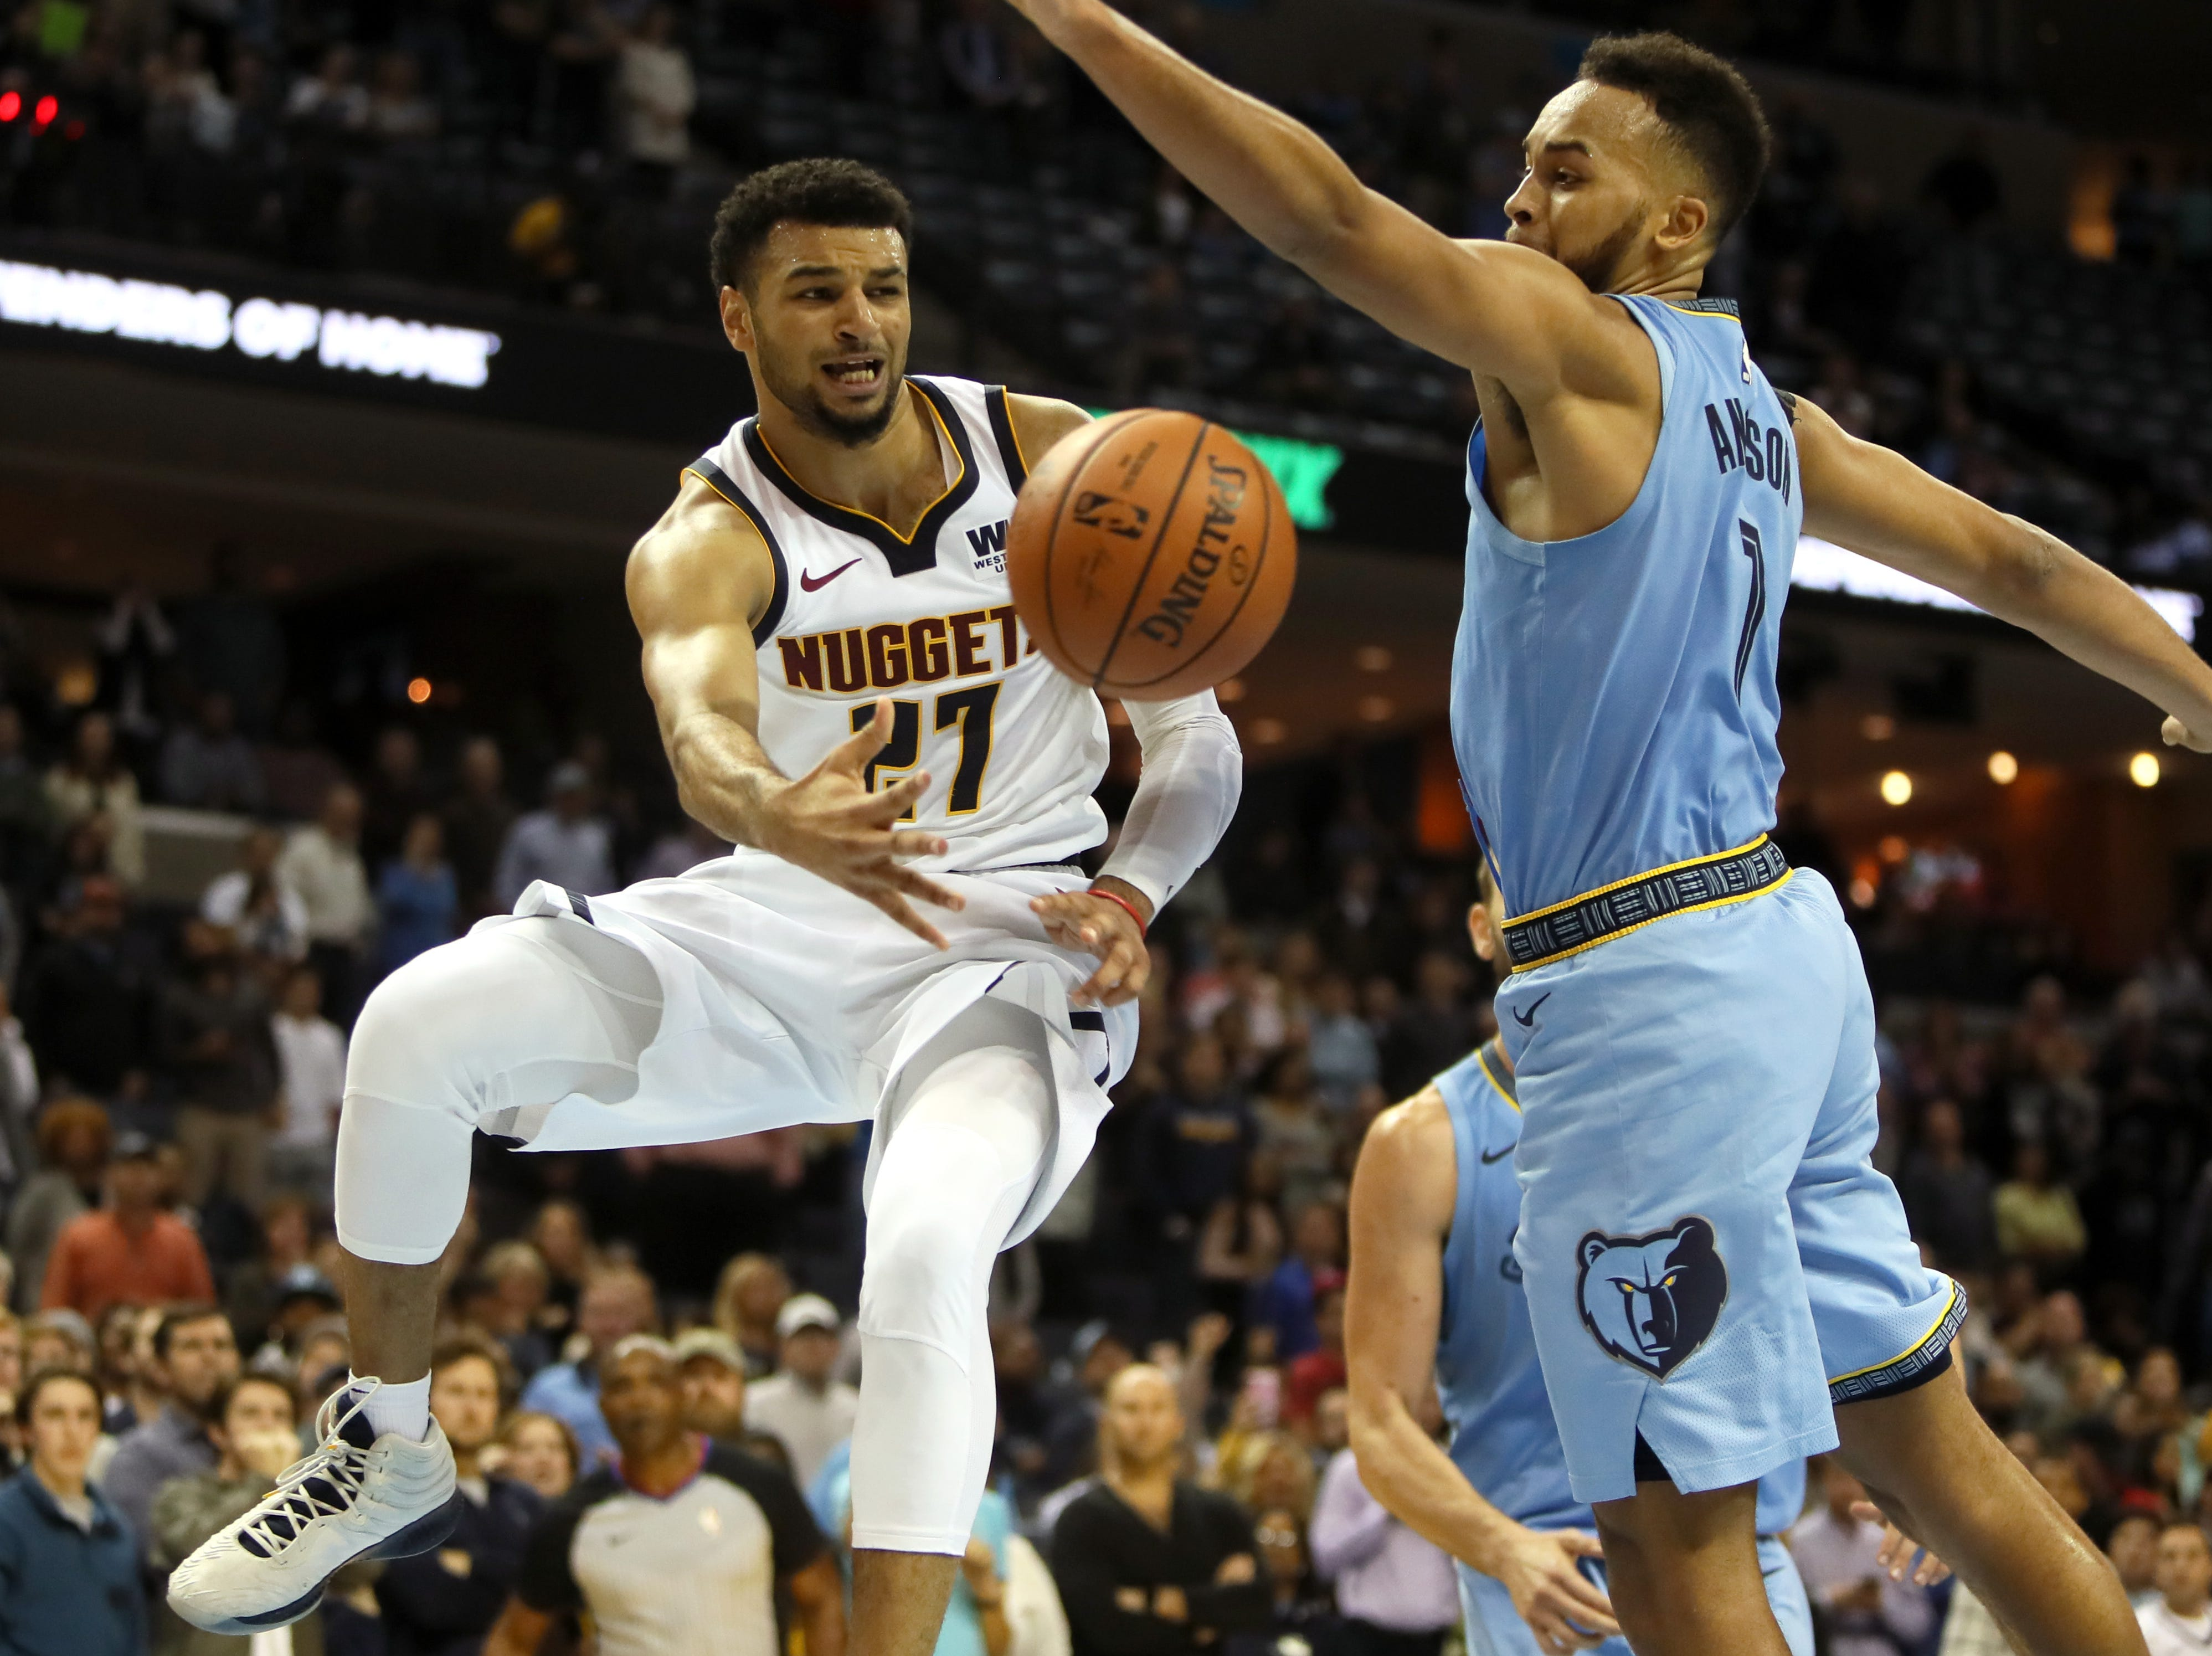 Denver Nuggets guard Jamal Murray passes the ball past Memphis Grizzlies guard Ryan Anderson during their game at the FedExForum on Wednesday, November 7, 2018.